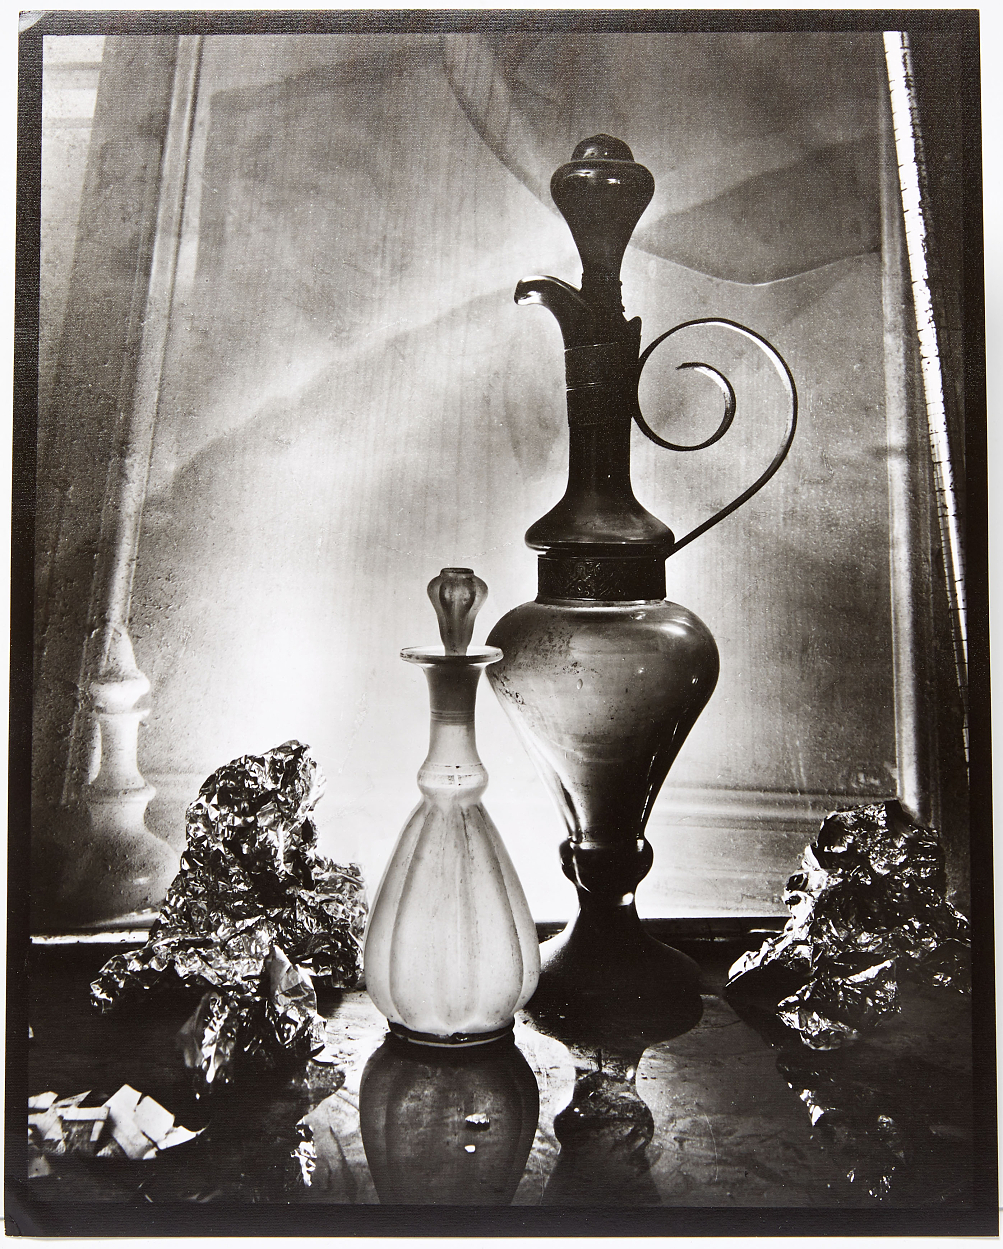 The photographs of Josef Sudek 1976